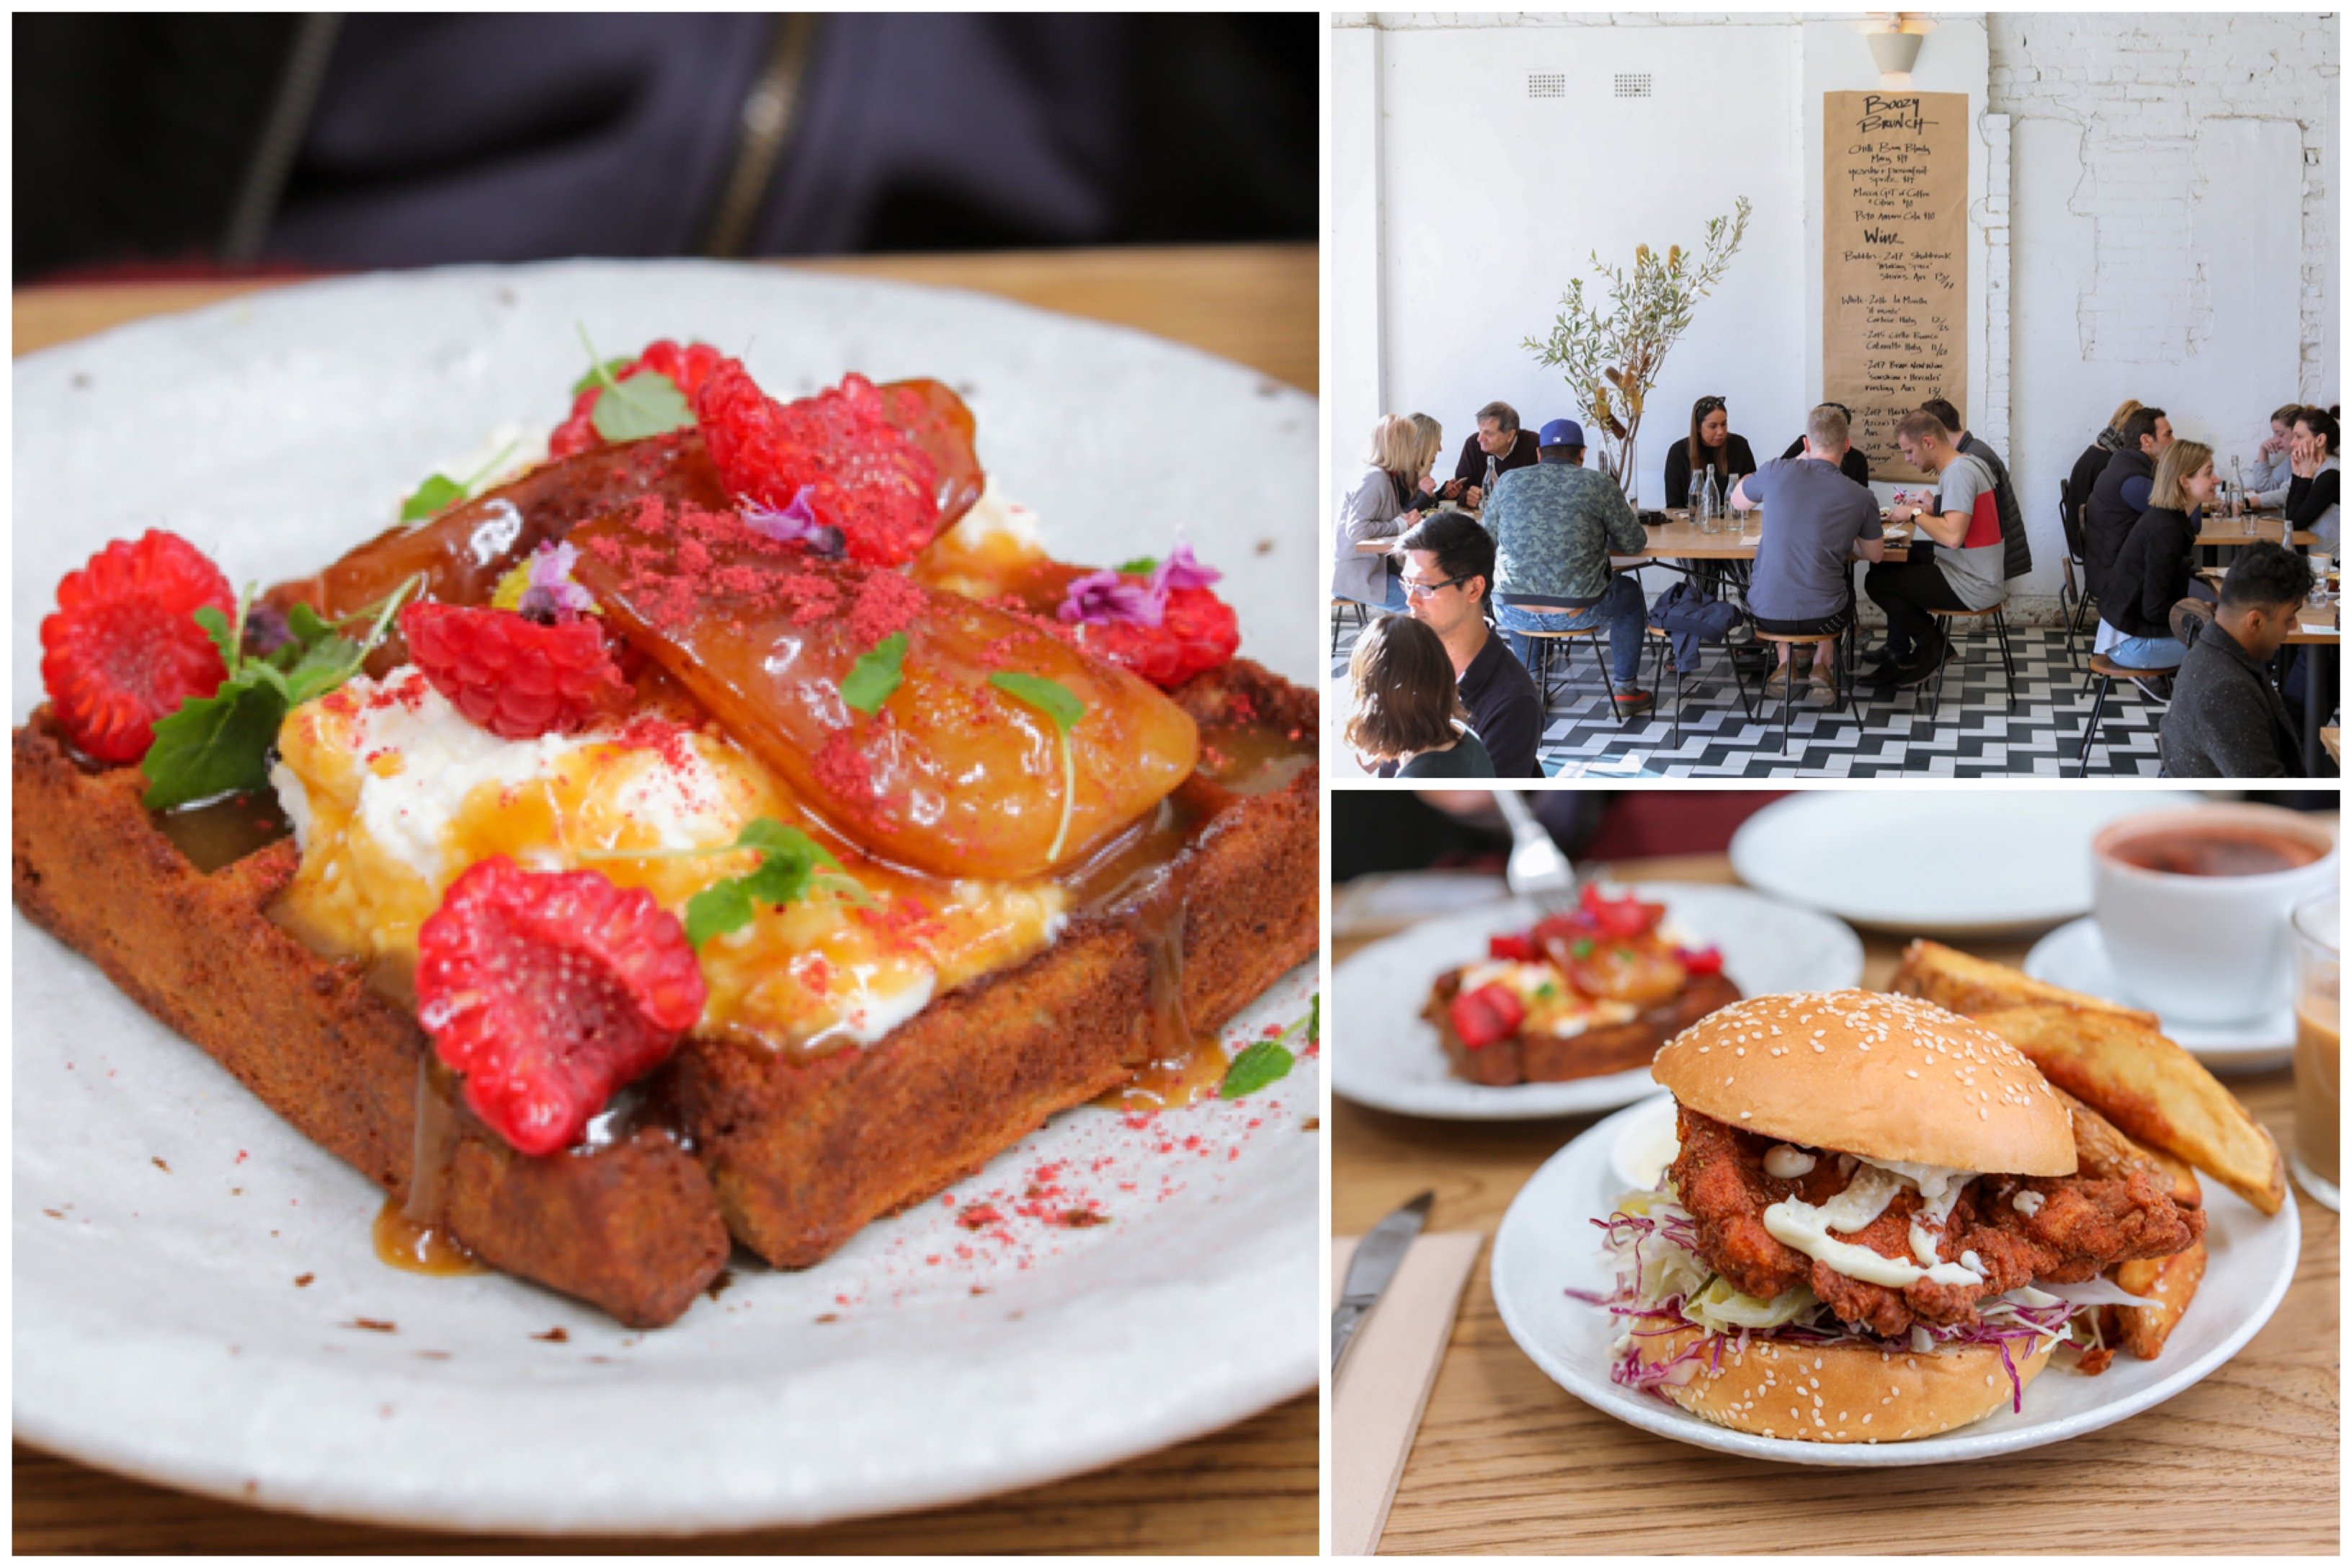 Mecca Coffee - One Of Sydney's Top Coffee Places, With Industrial Chic And Pretty Waffles